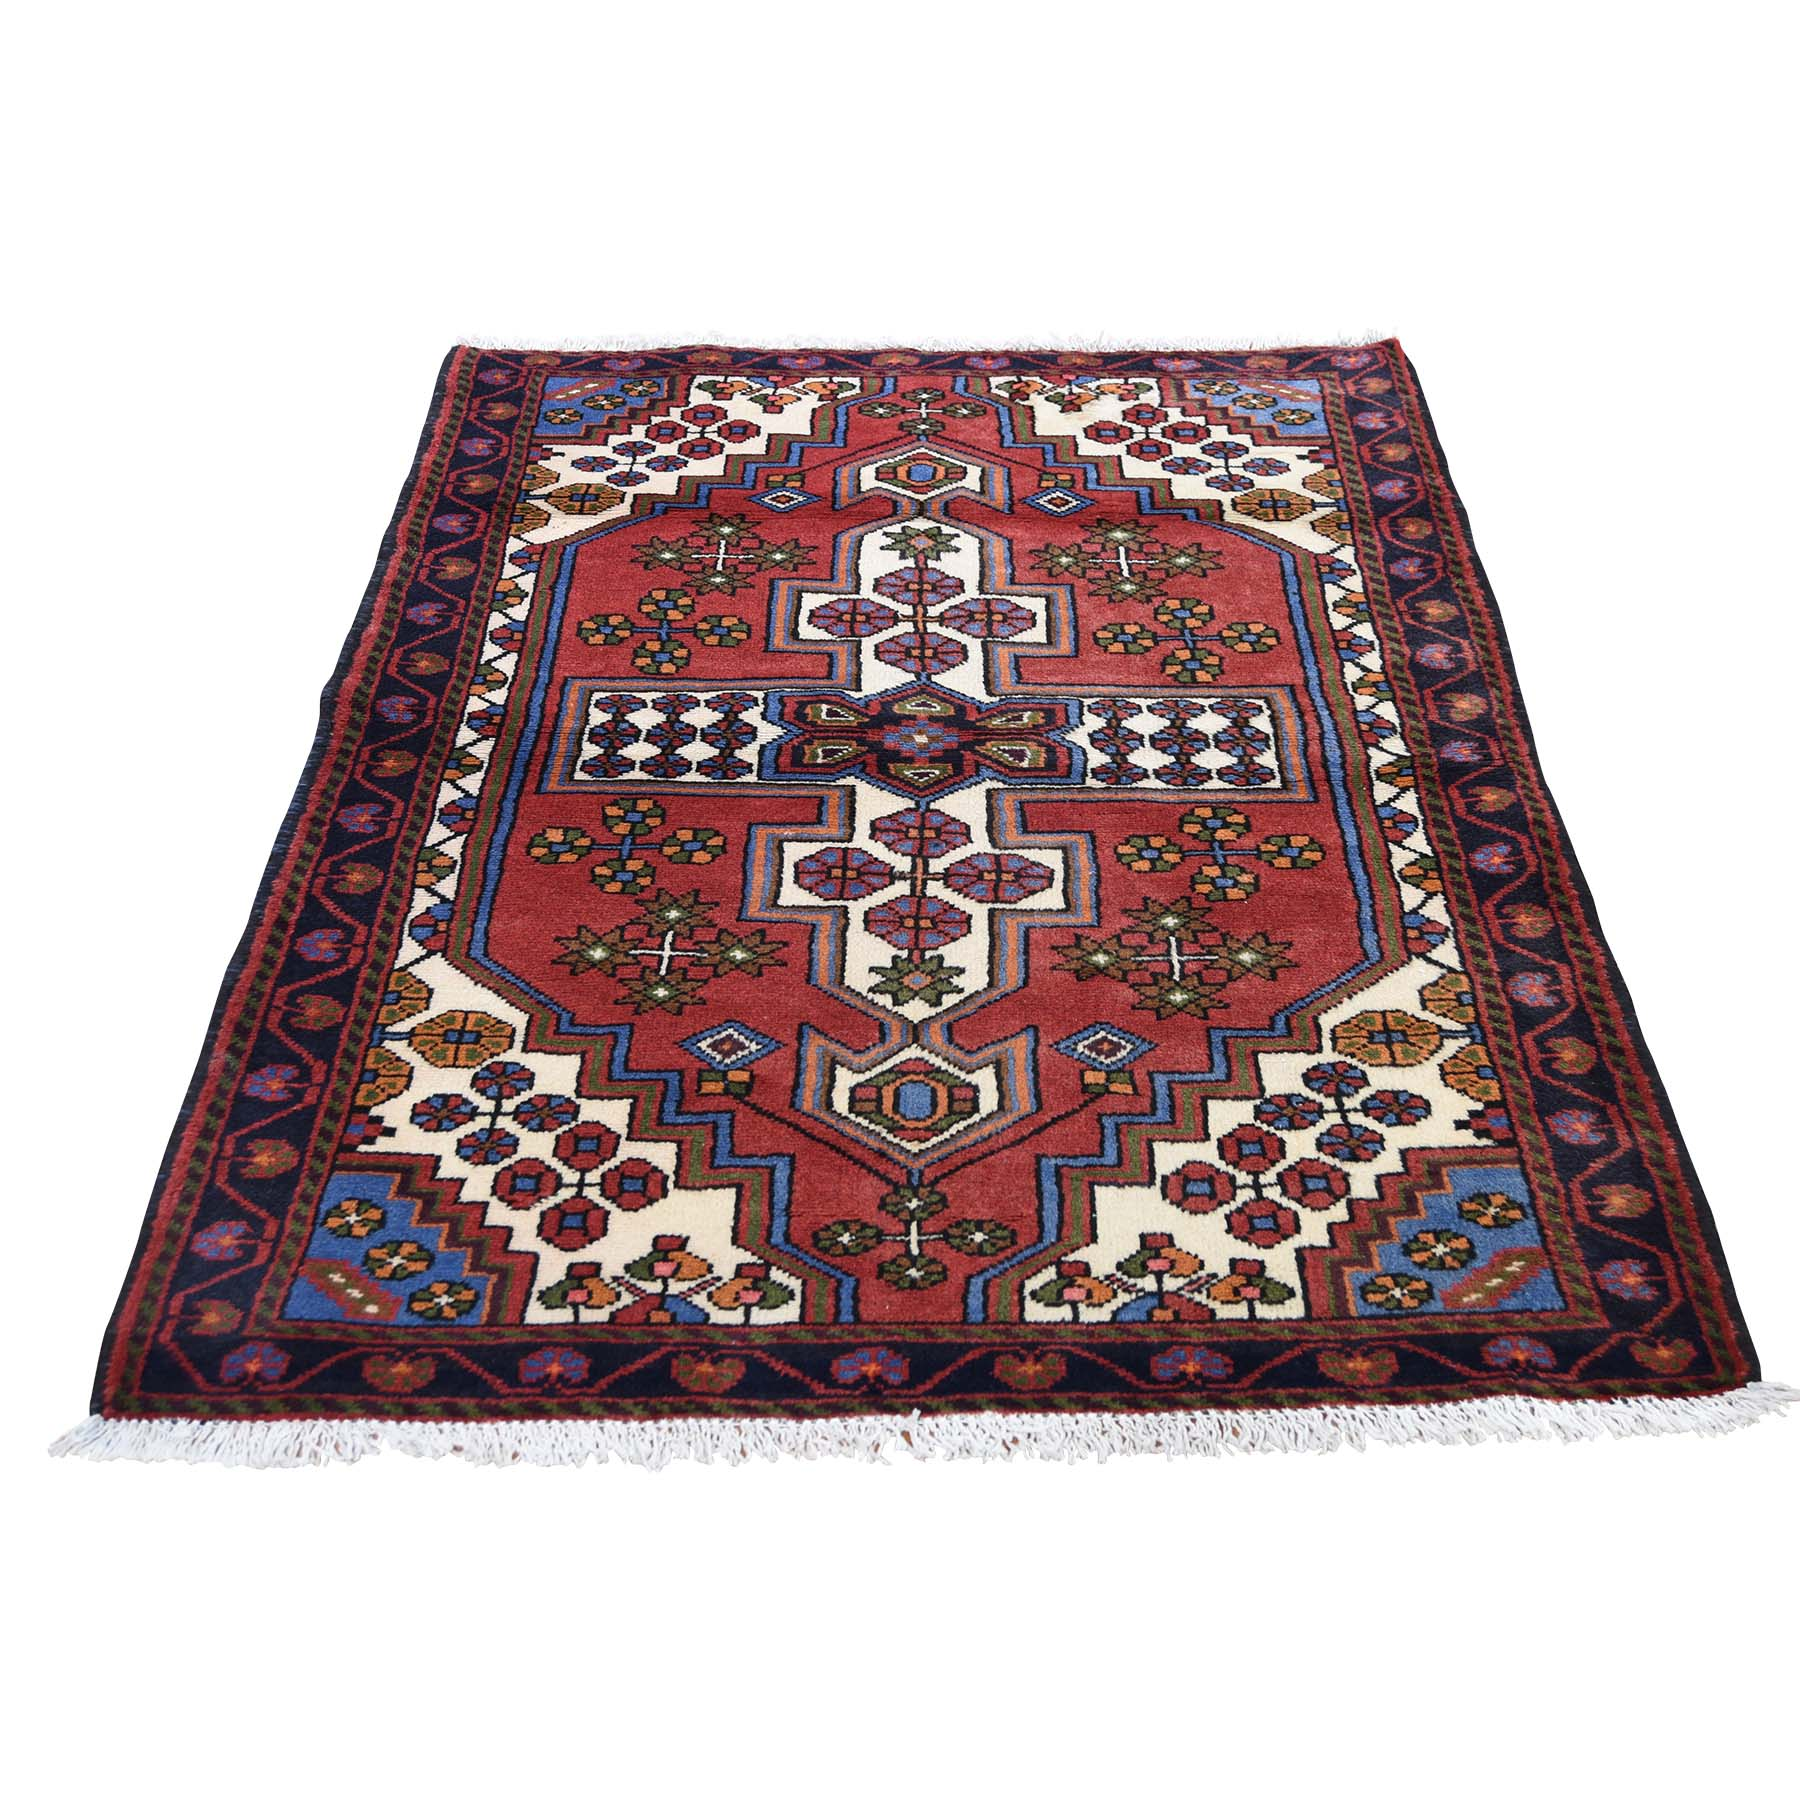 "3'5""X5'3"" Vintage Persian Hamadan Pure Wool Hand-Knotted Oriental Rug moadd79e"